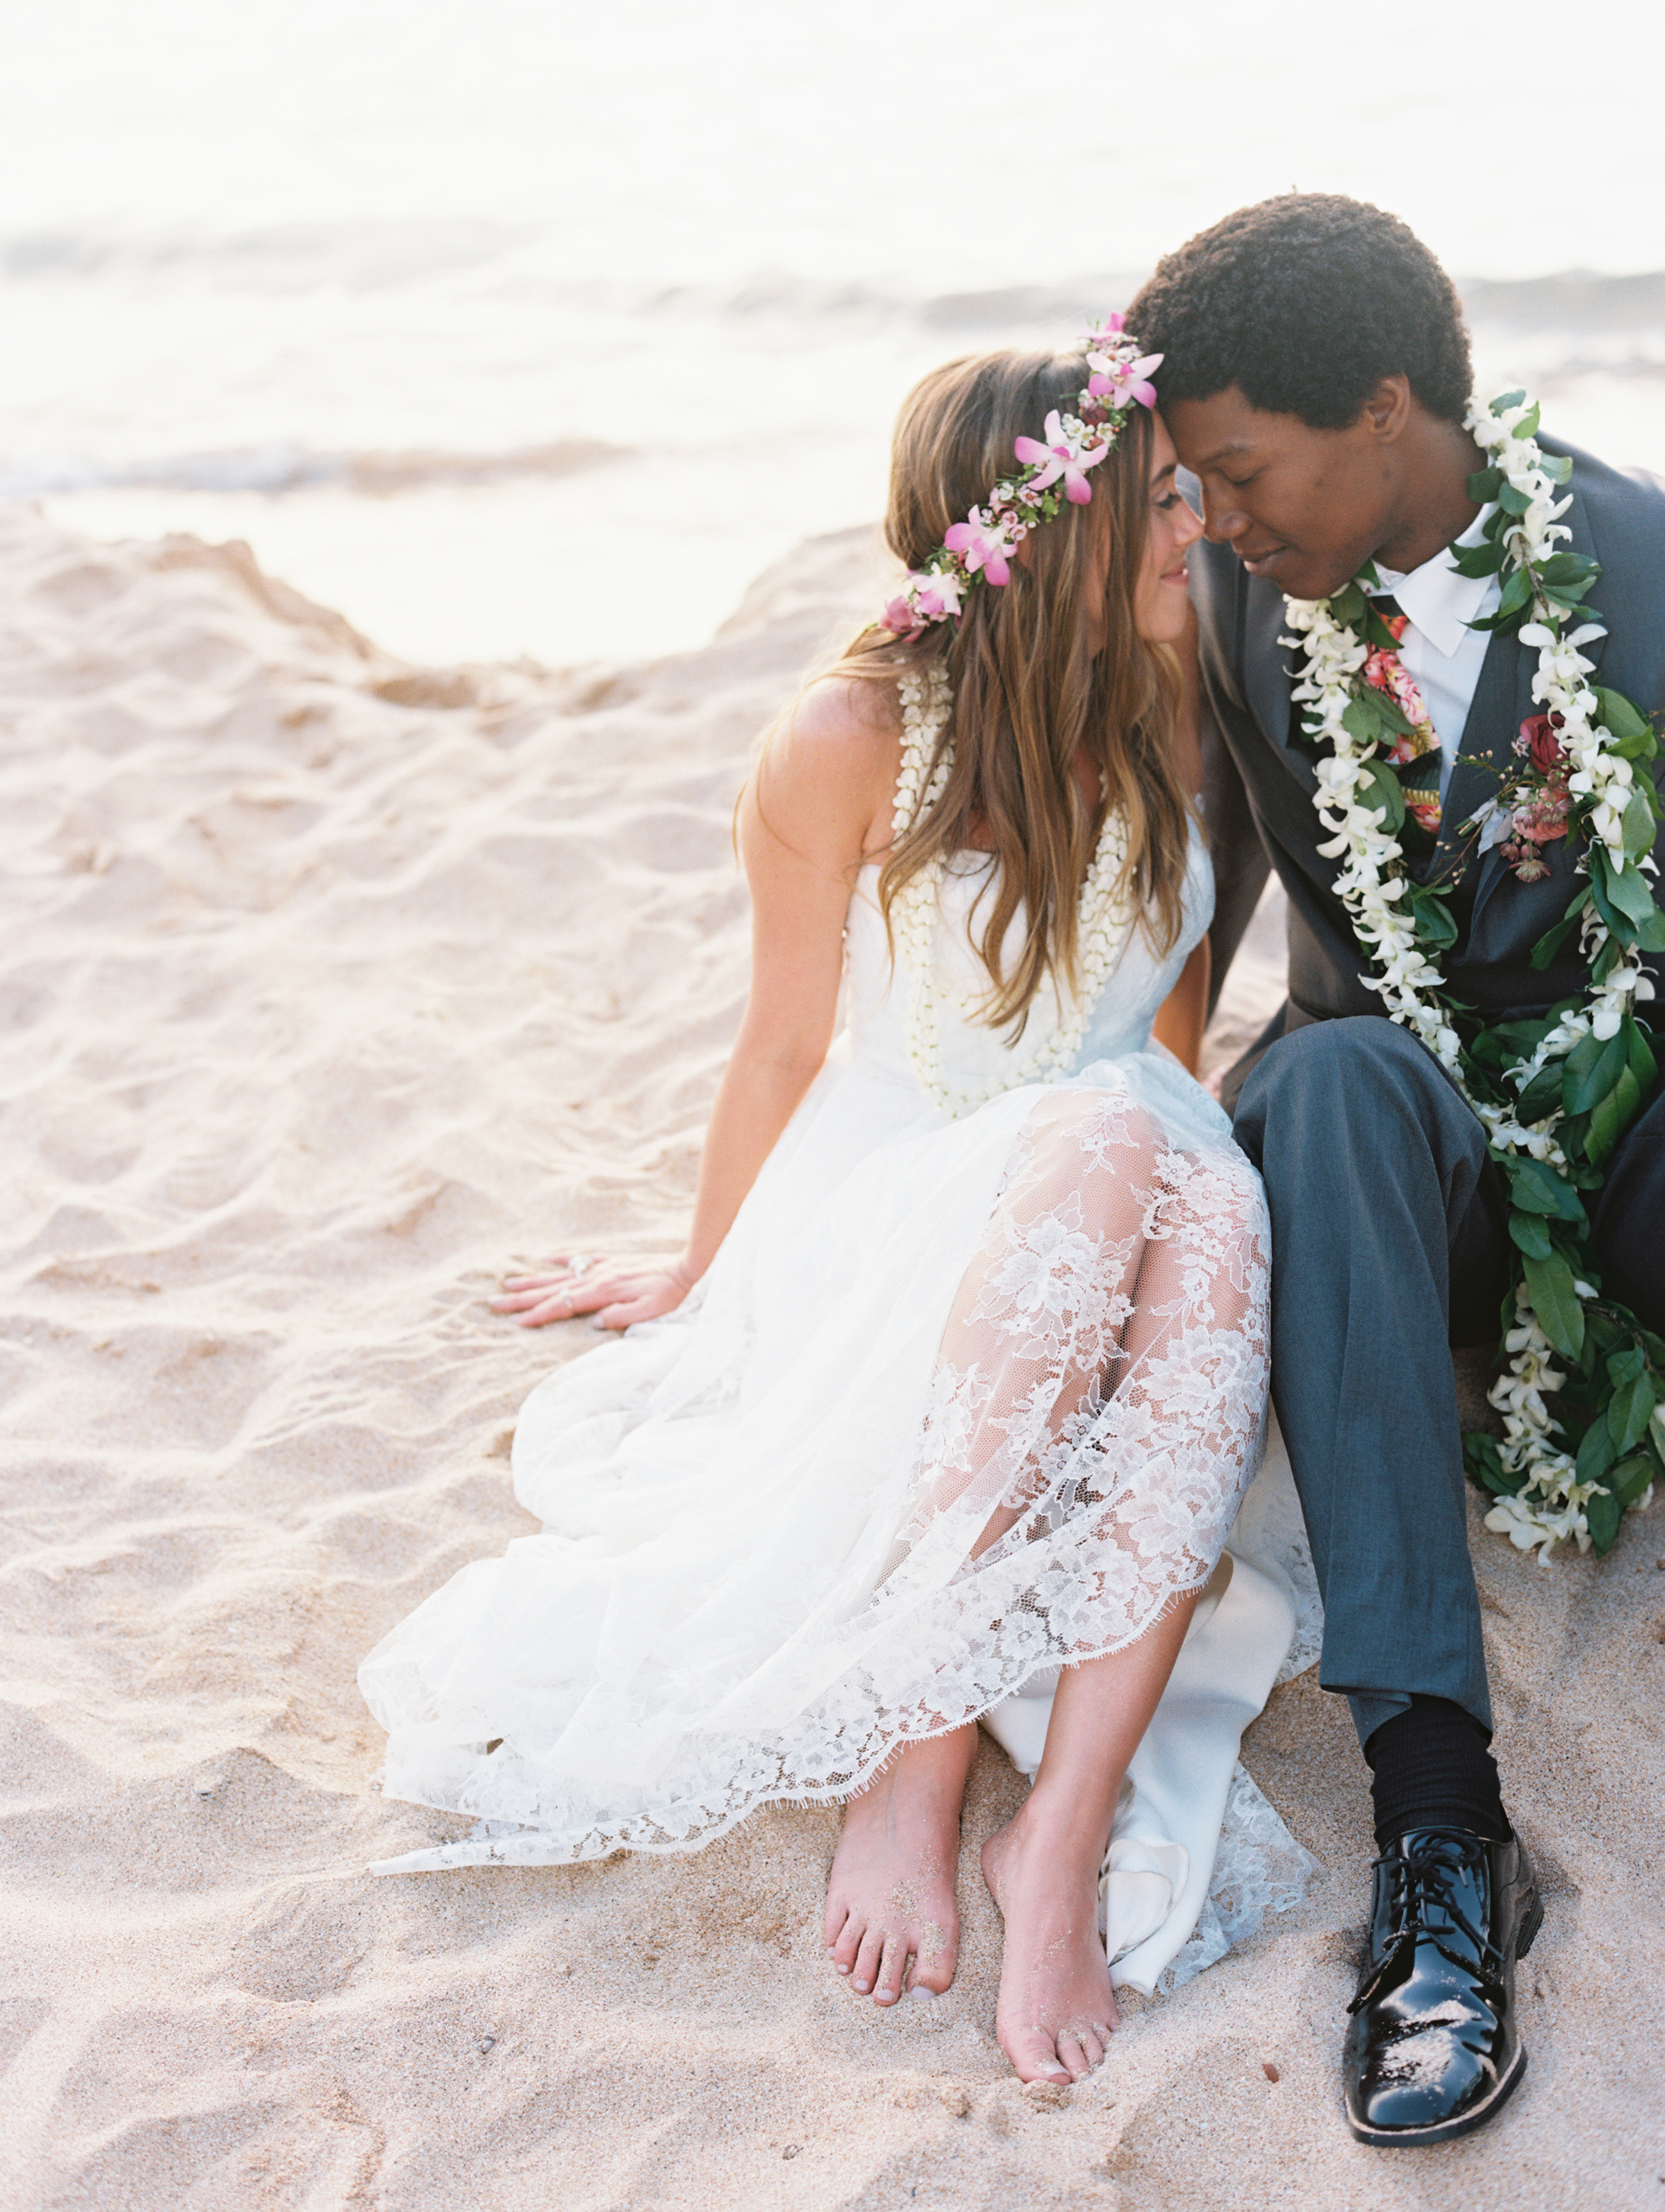 Bride and Groom Sitting on the Sand at the Beach